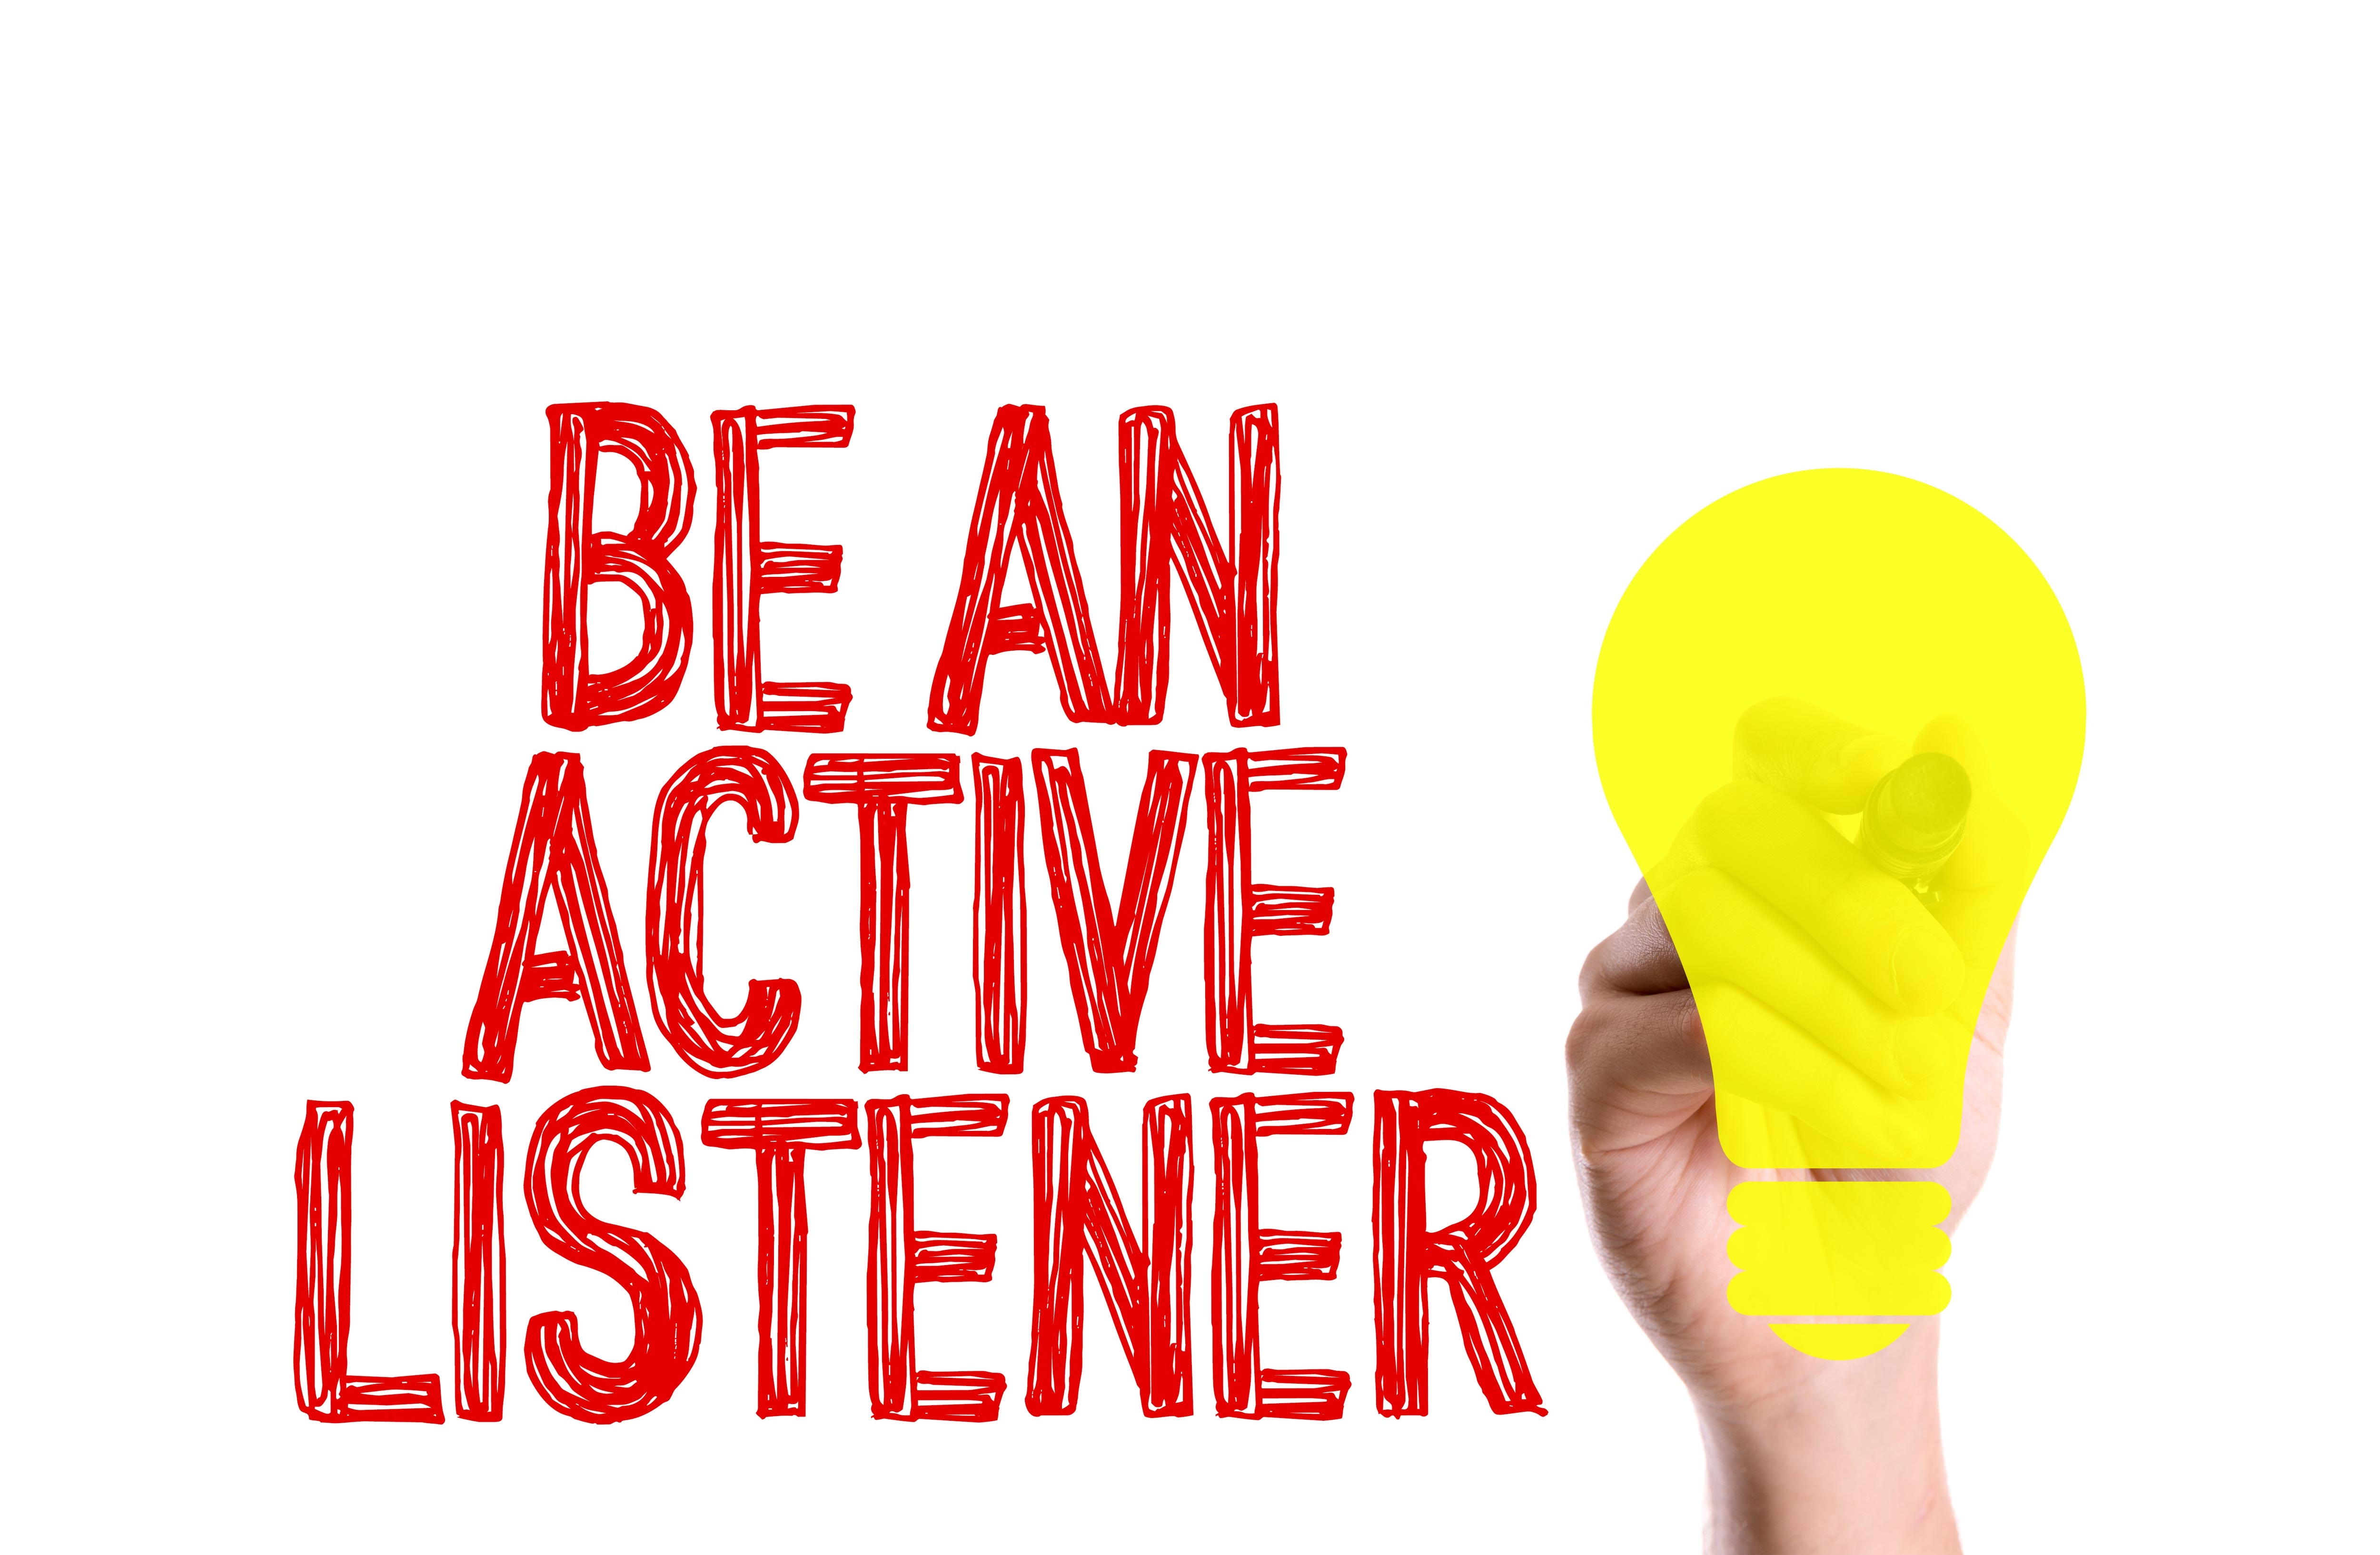 active listening skills Clearly, listening is a skill that we can all benefit from improving active listening is designed to encourage respect and understanding you are gaining information and perspective.